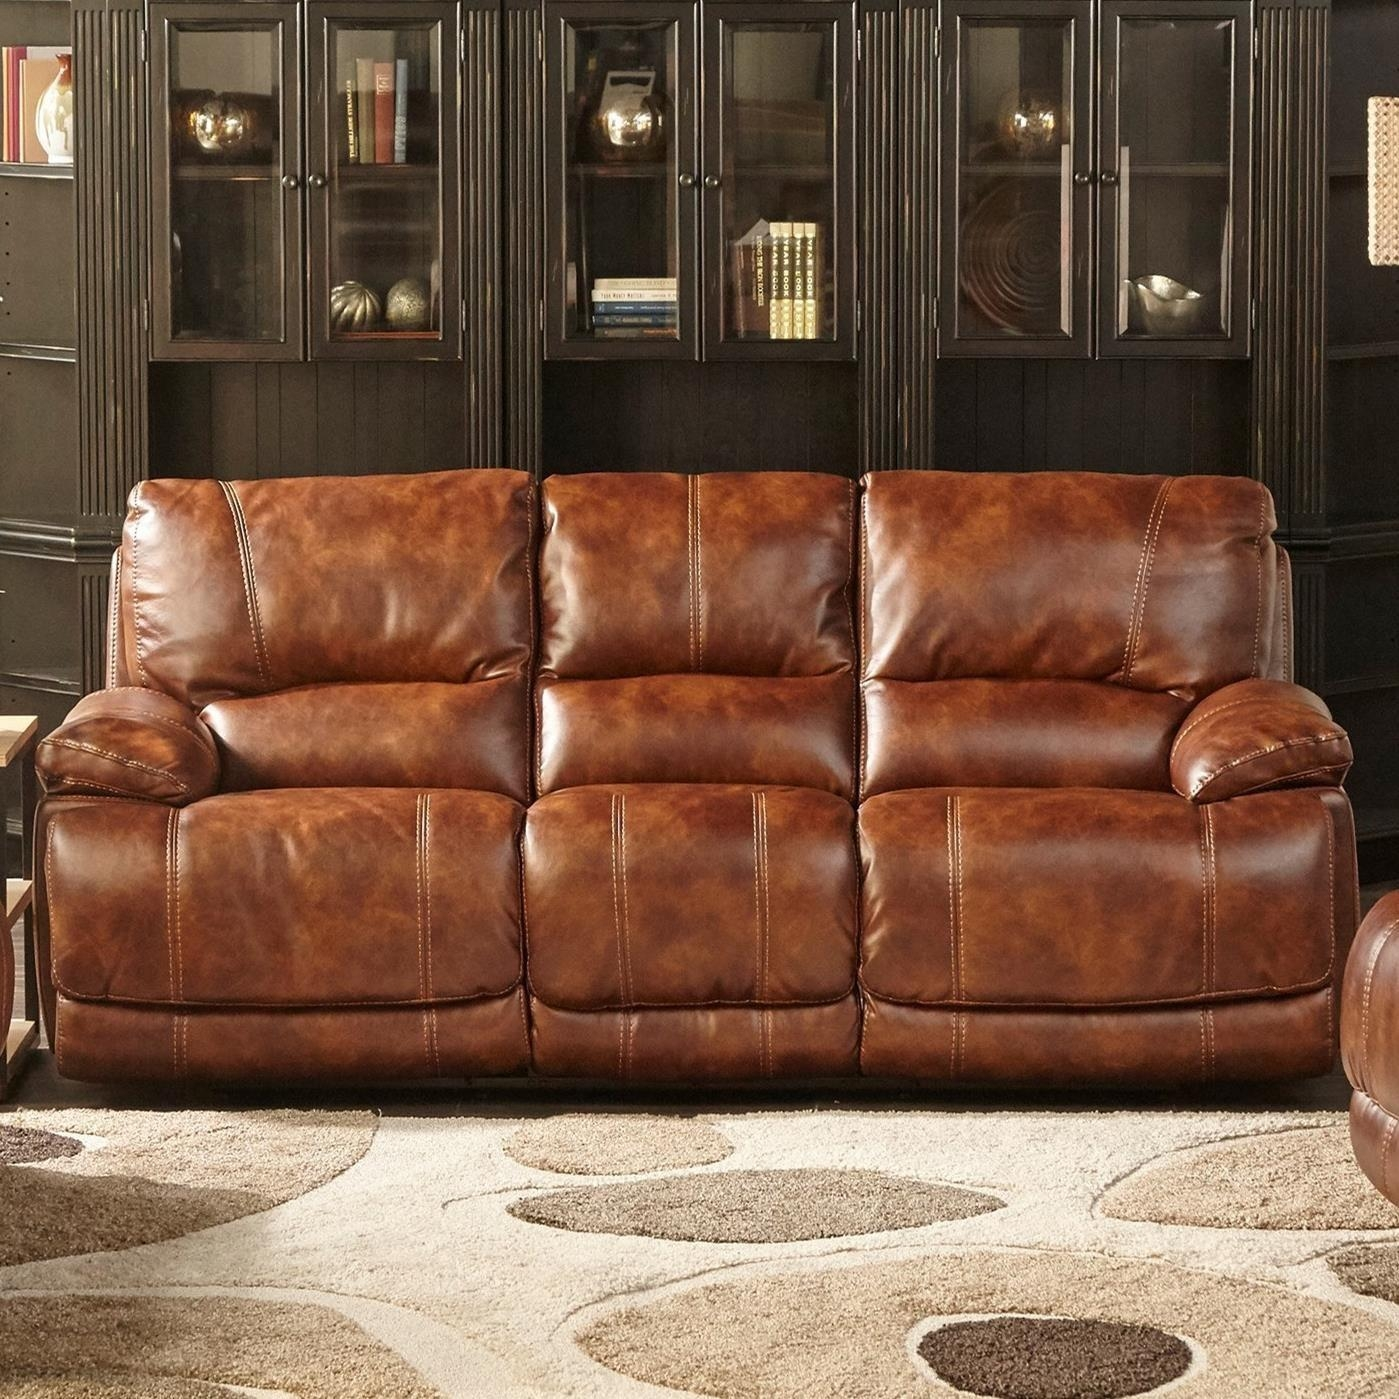 Cheers Sofa 5185M Dual Power Motion Sofa With Power Headrests Regarding Cheers Leather Sofas (View 10 of 20)